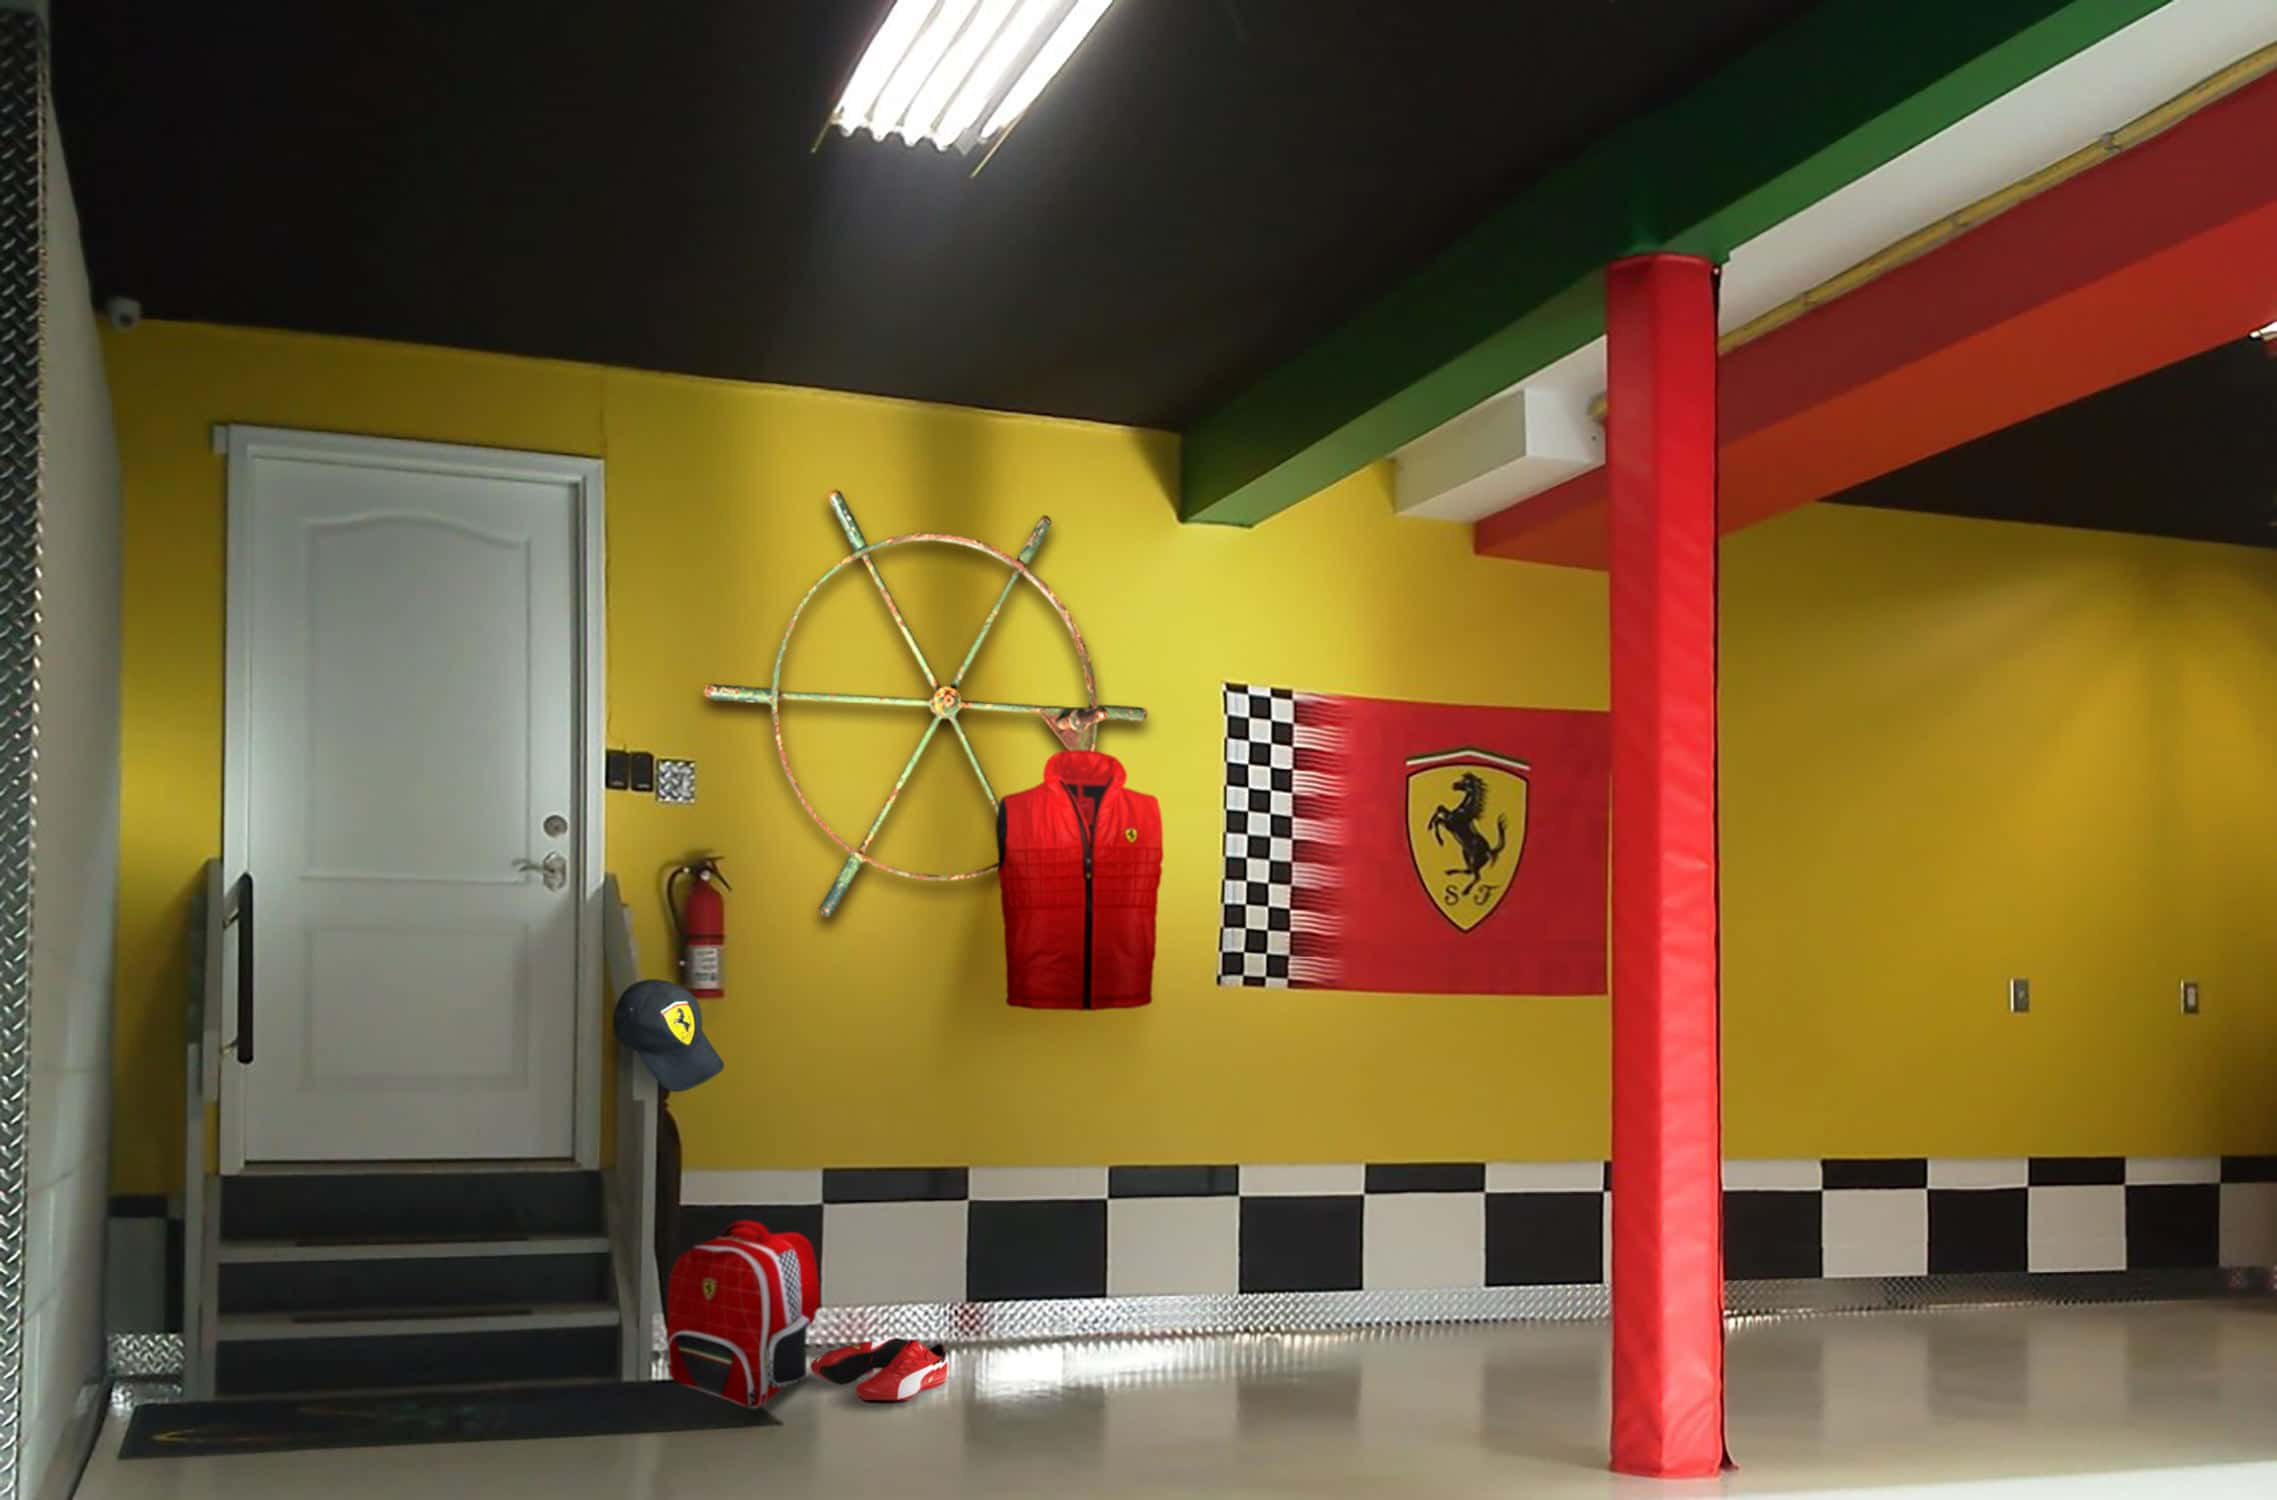 Objet decoration interieur design roue d 39 cluse en porte for Garage interieur